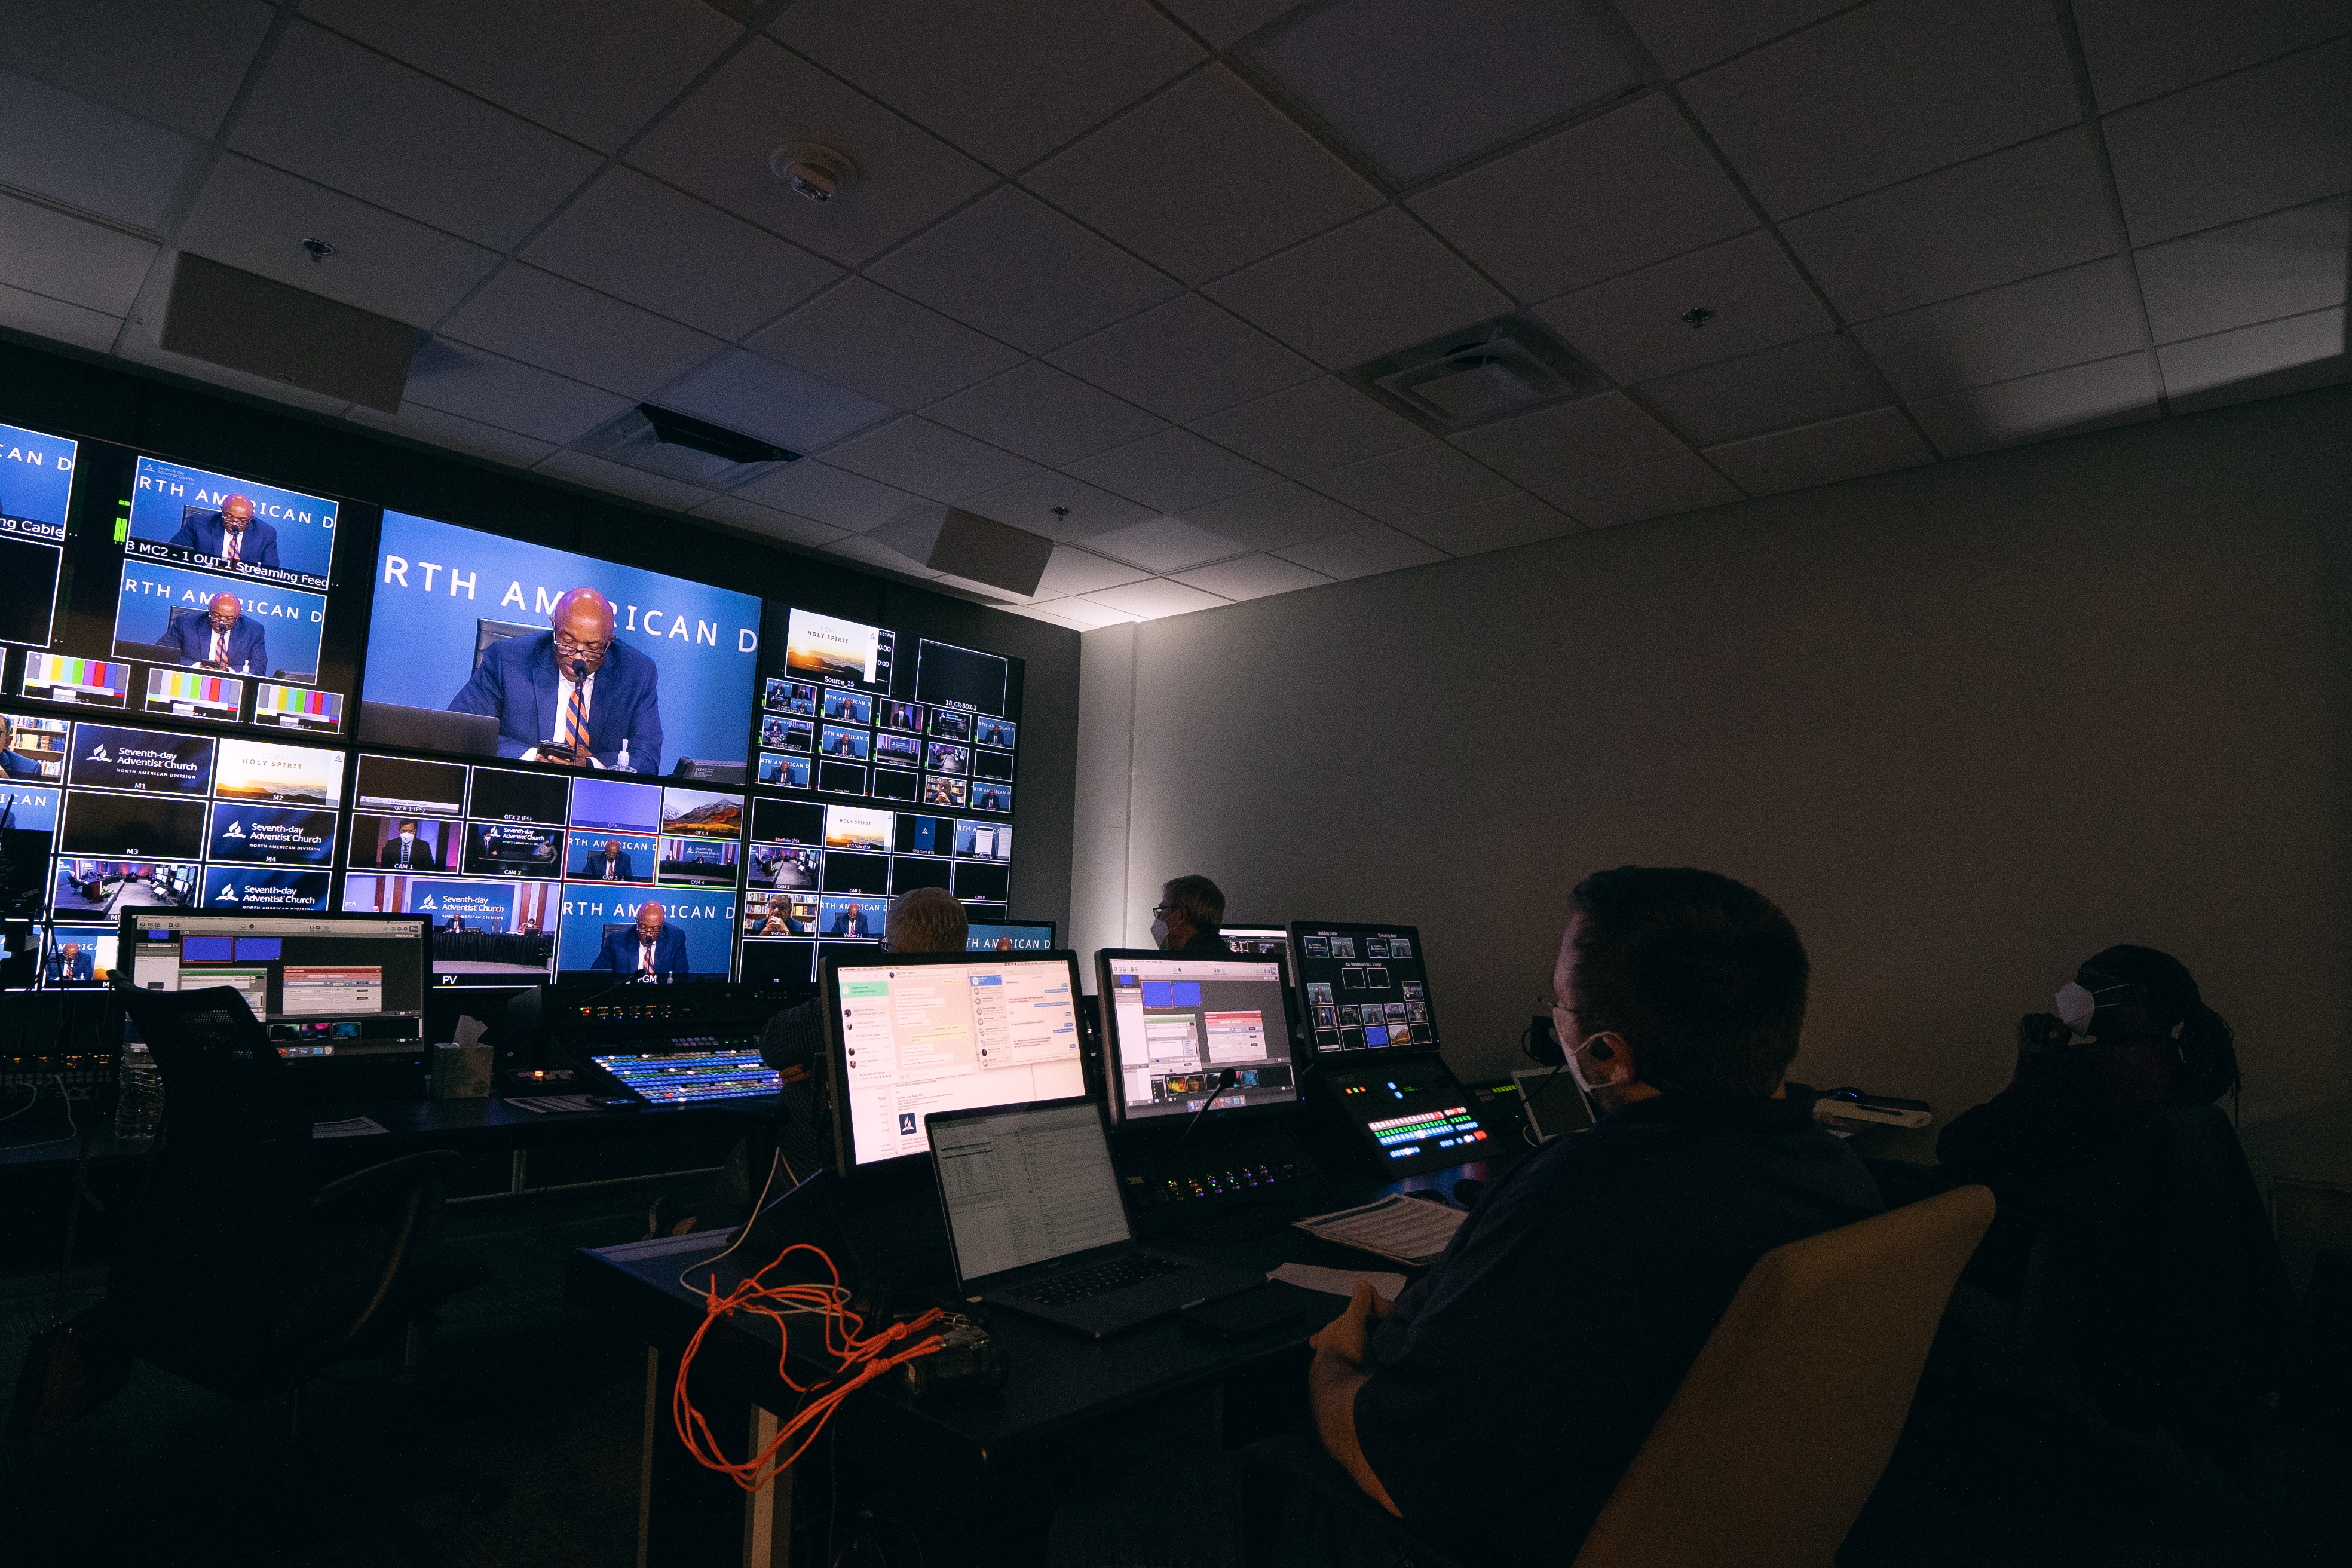 Production crew led by Nick Wolfer monitors broadcast from the NAD studio control room. Photo: Pieter Damsteegt